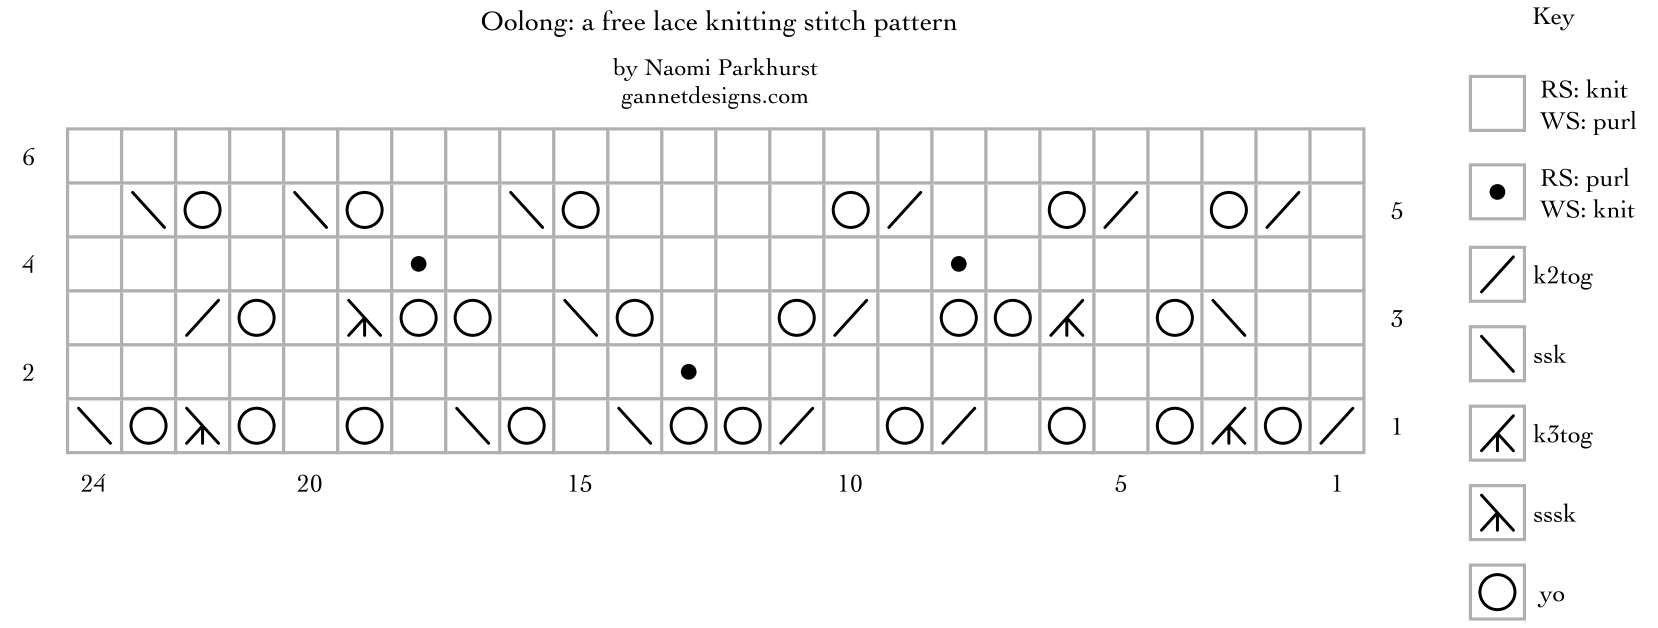 Oolong: a free lace knitting stitch pattern chart, by Naomi Parkhurst